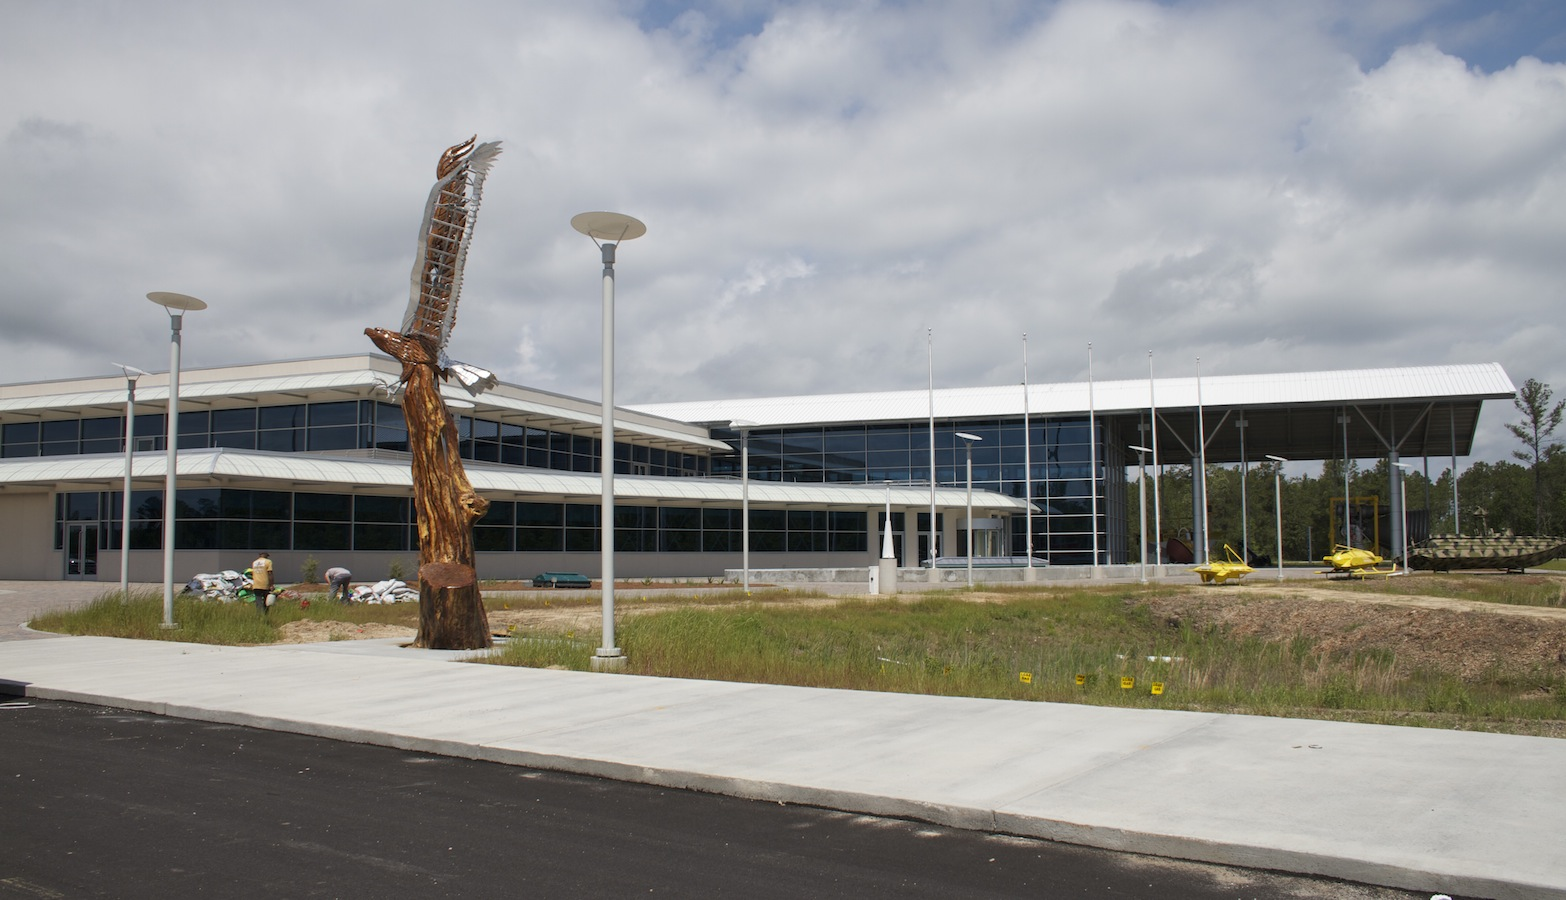 The INFINITY Science Center opened in 2012 and focuses on the STEM subjects, aerospace,and earth science.